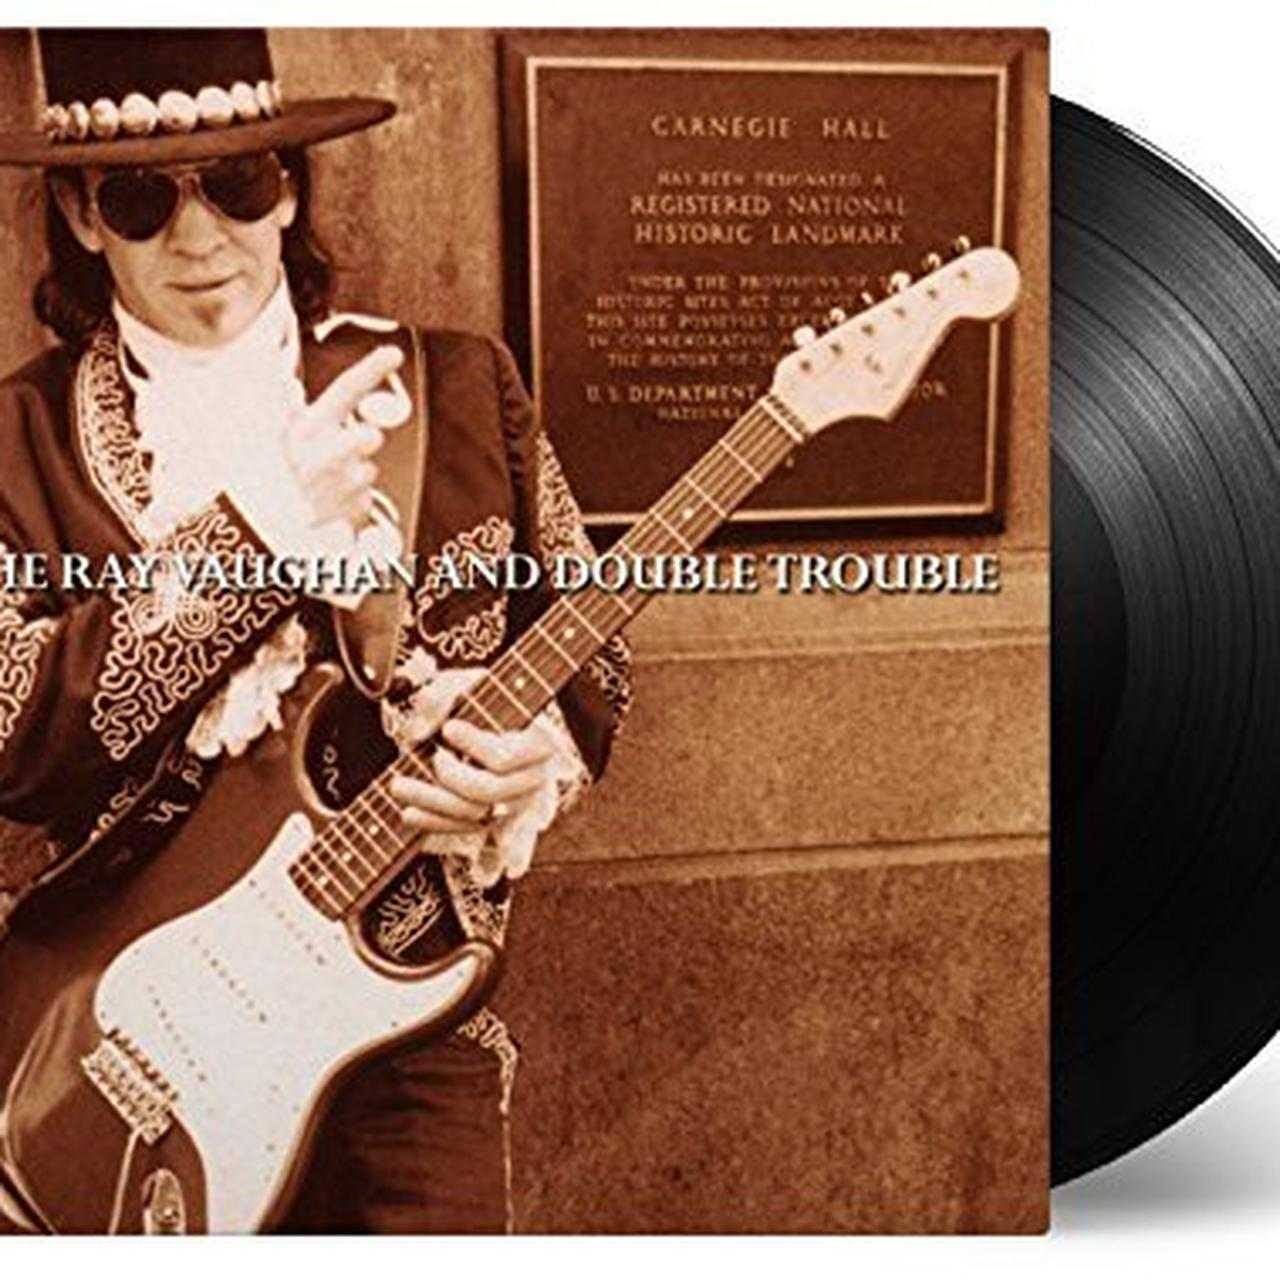 stevie ray vaughan double trouble live at carnegie hall vinyl record. Black Bedroom Furniture Sets. Home Design Ideas